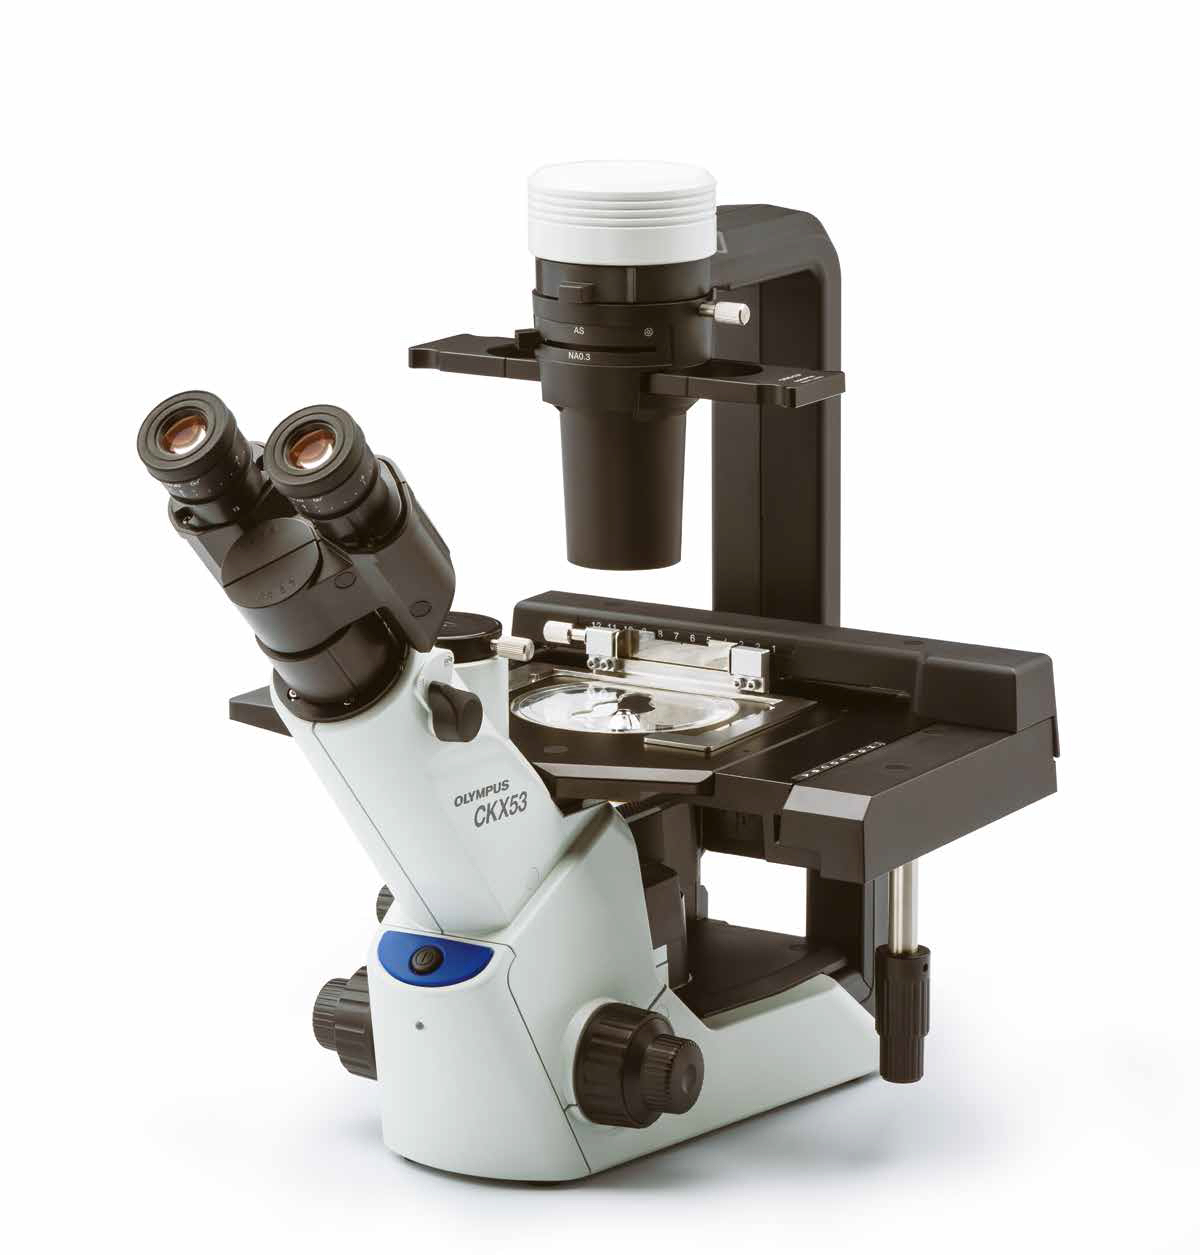 Olympus CKX53 inverted microscope